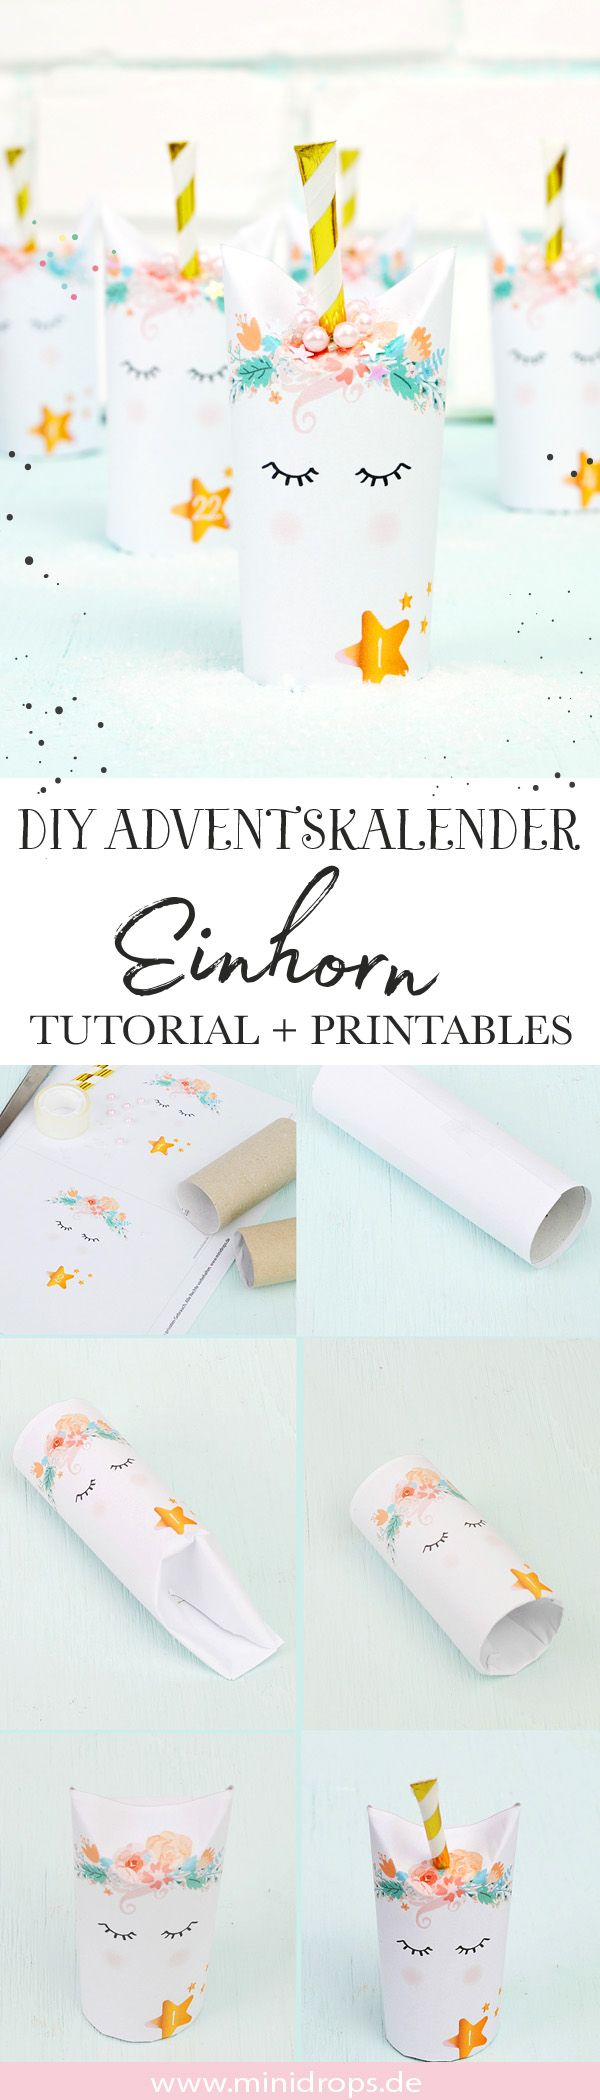 Photo of DIY Einhorn Adventskalender aus Toilettenpapierollen basteln